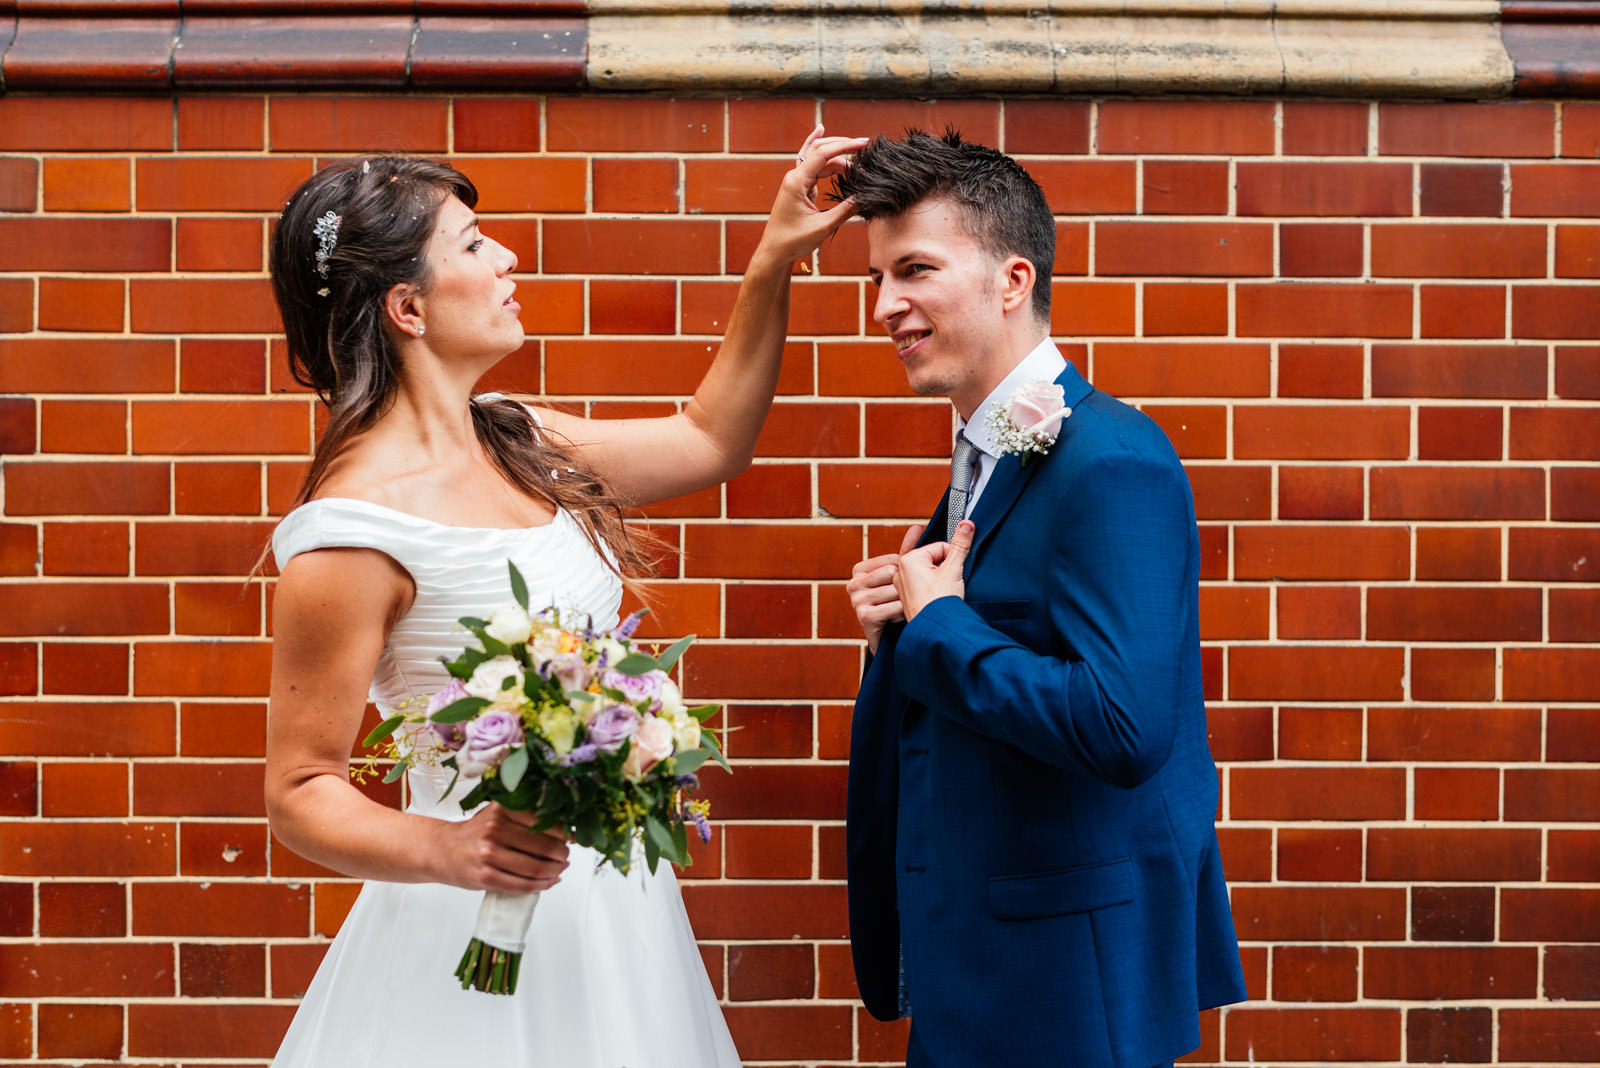 bride removing confetti from grooms hair